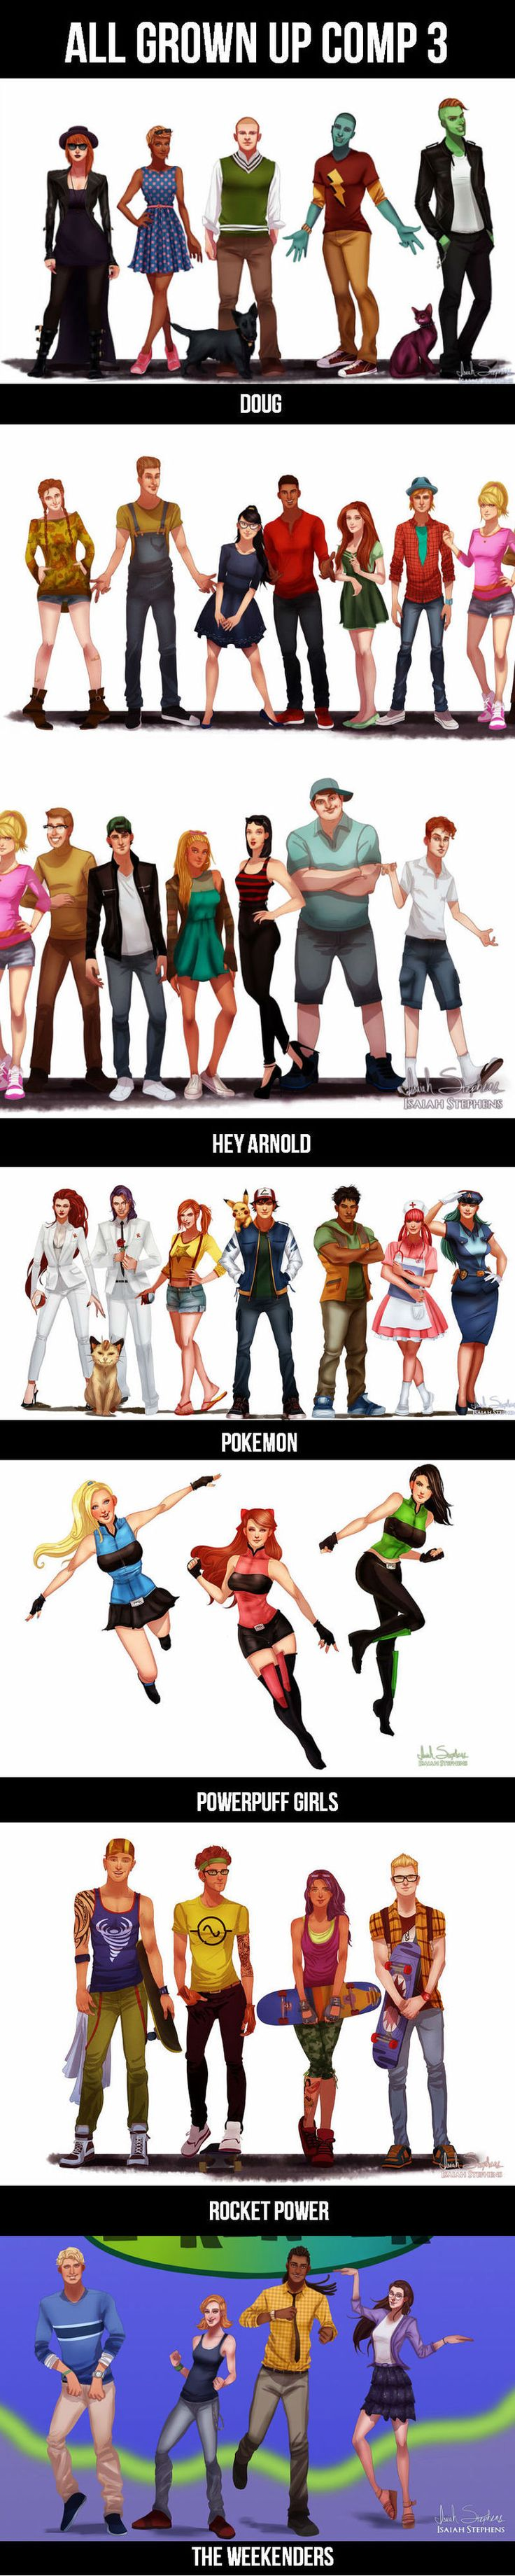 All Grown Up Comp 3  // funny pictures - funny photos - funny images - funny pics - funny quotes - #lol #humor #funnypictures